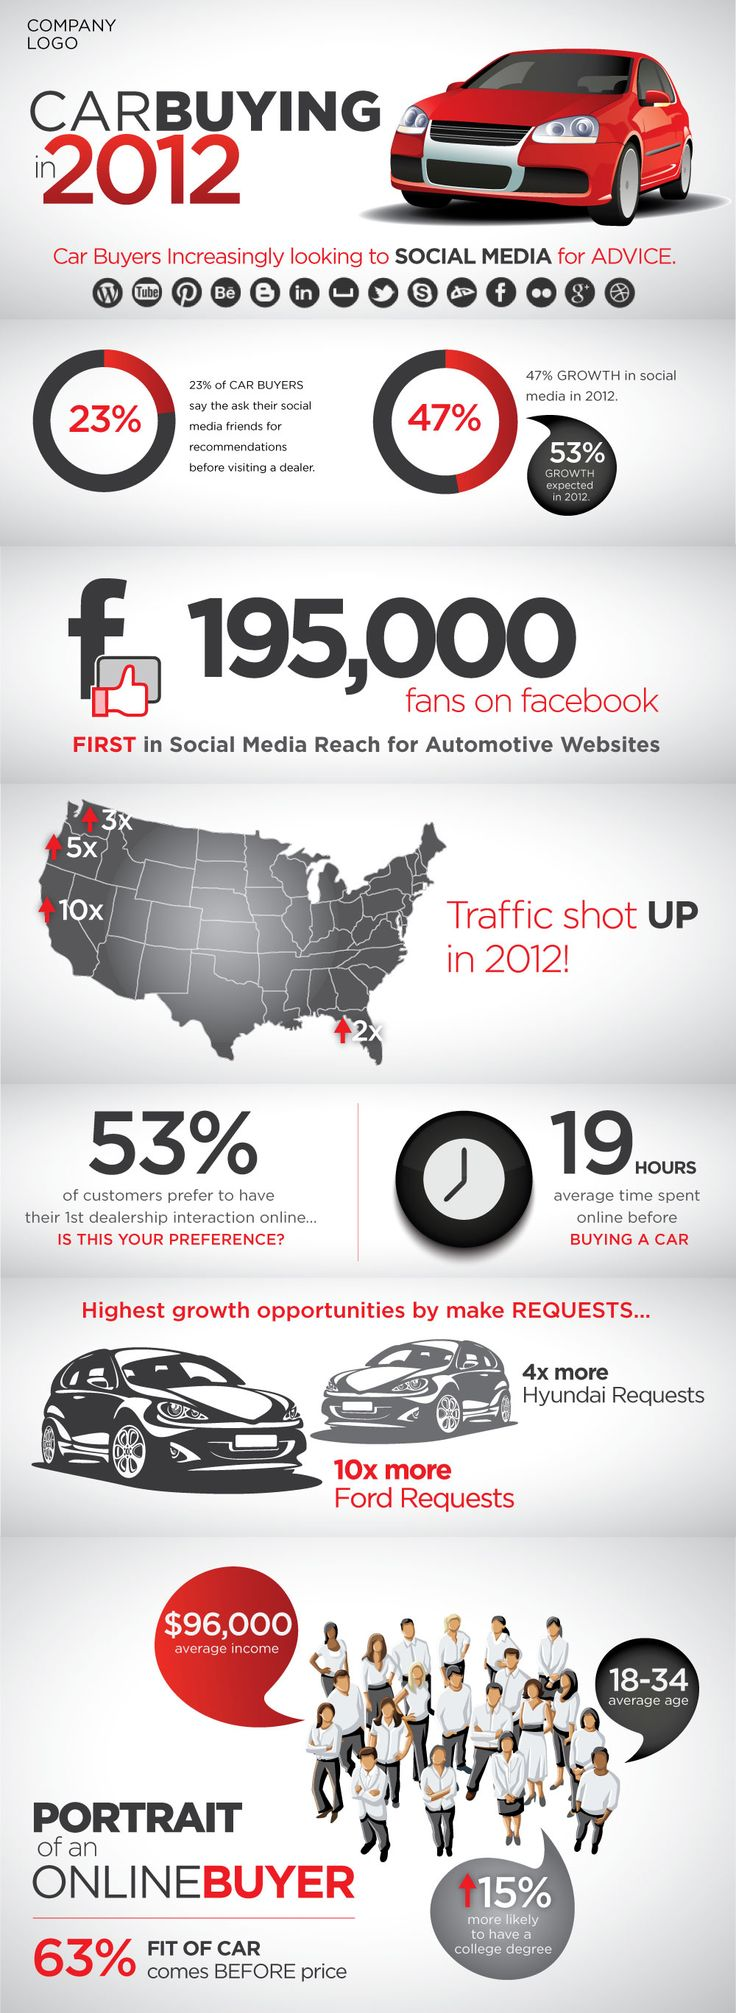 Car buying industry statistics driven by Social Media influence. Design Contest - 99designs.com